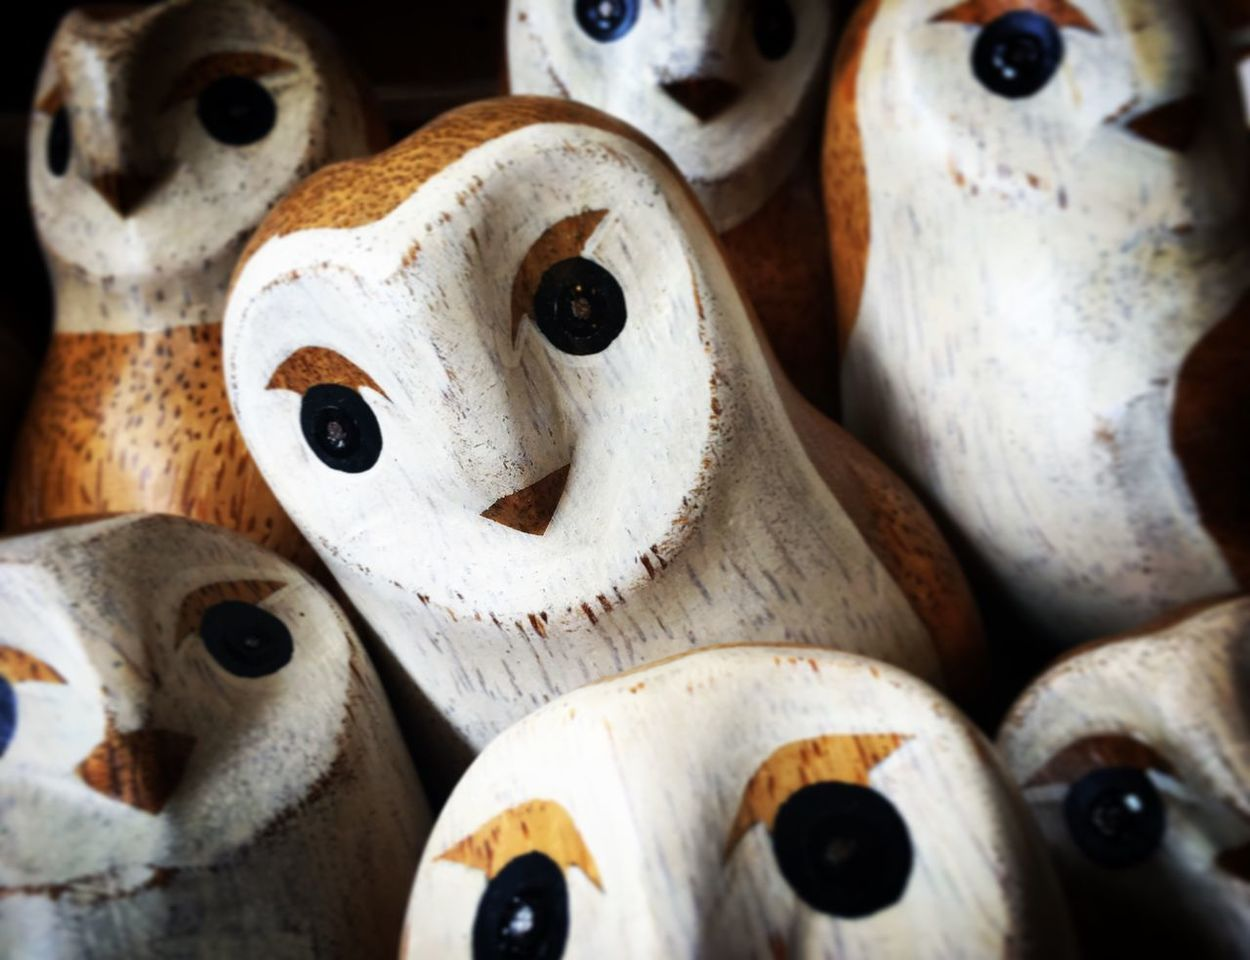 Close-up No People Abundance Indoors  Large Group Of Objects Retail  Full Frame Backgrounds Day Owls Owl Eyes Wooden Owl Carving